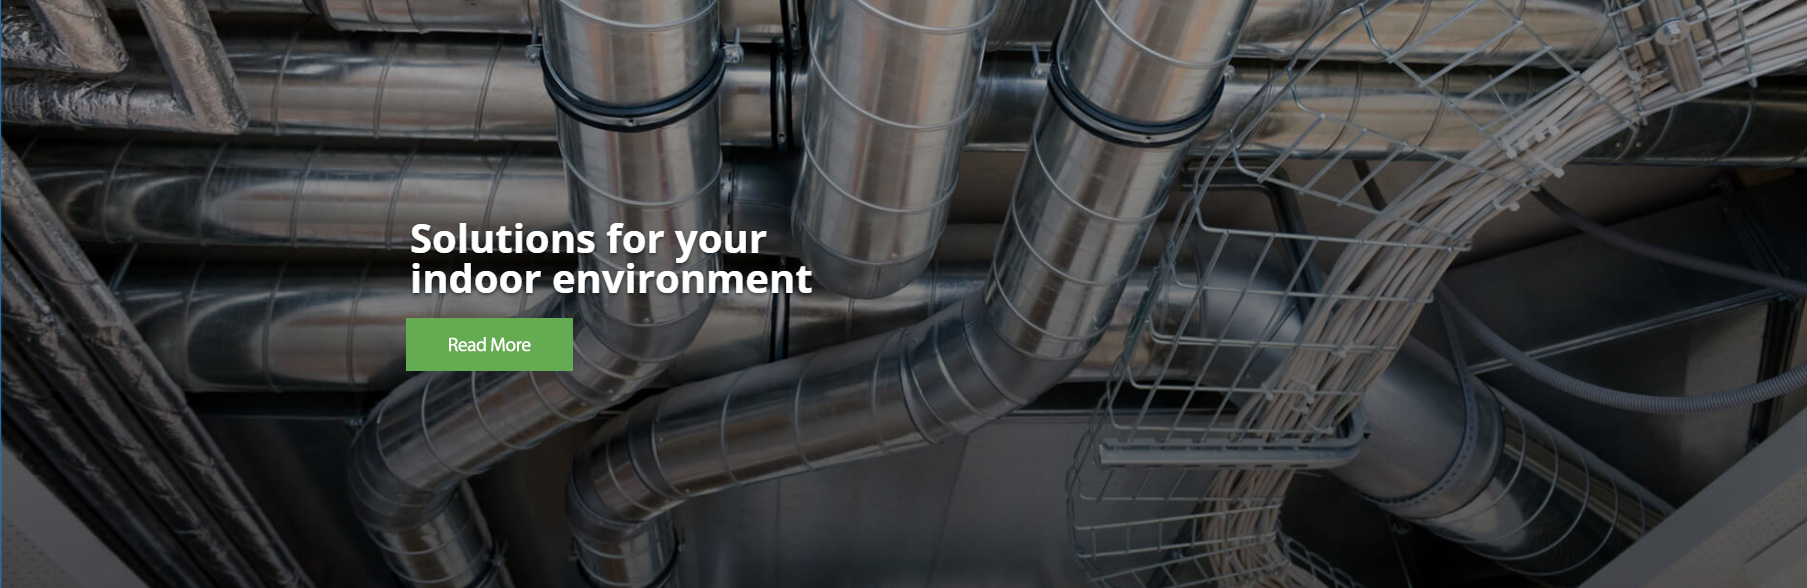 commercial air duct and HVAC cleaning